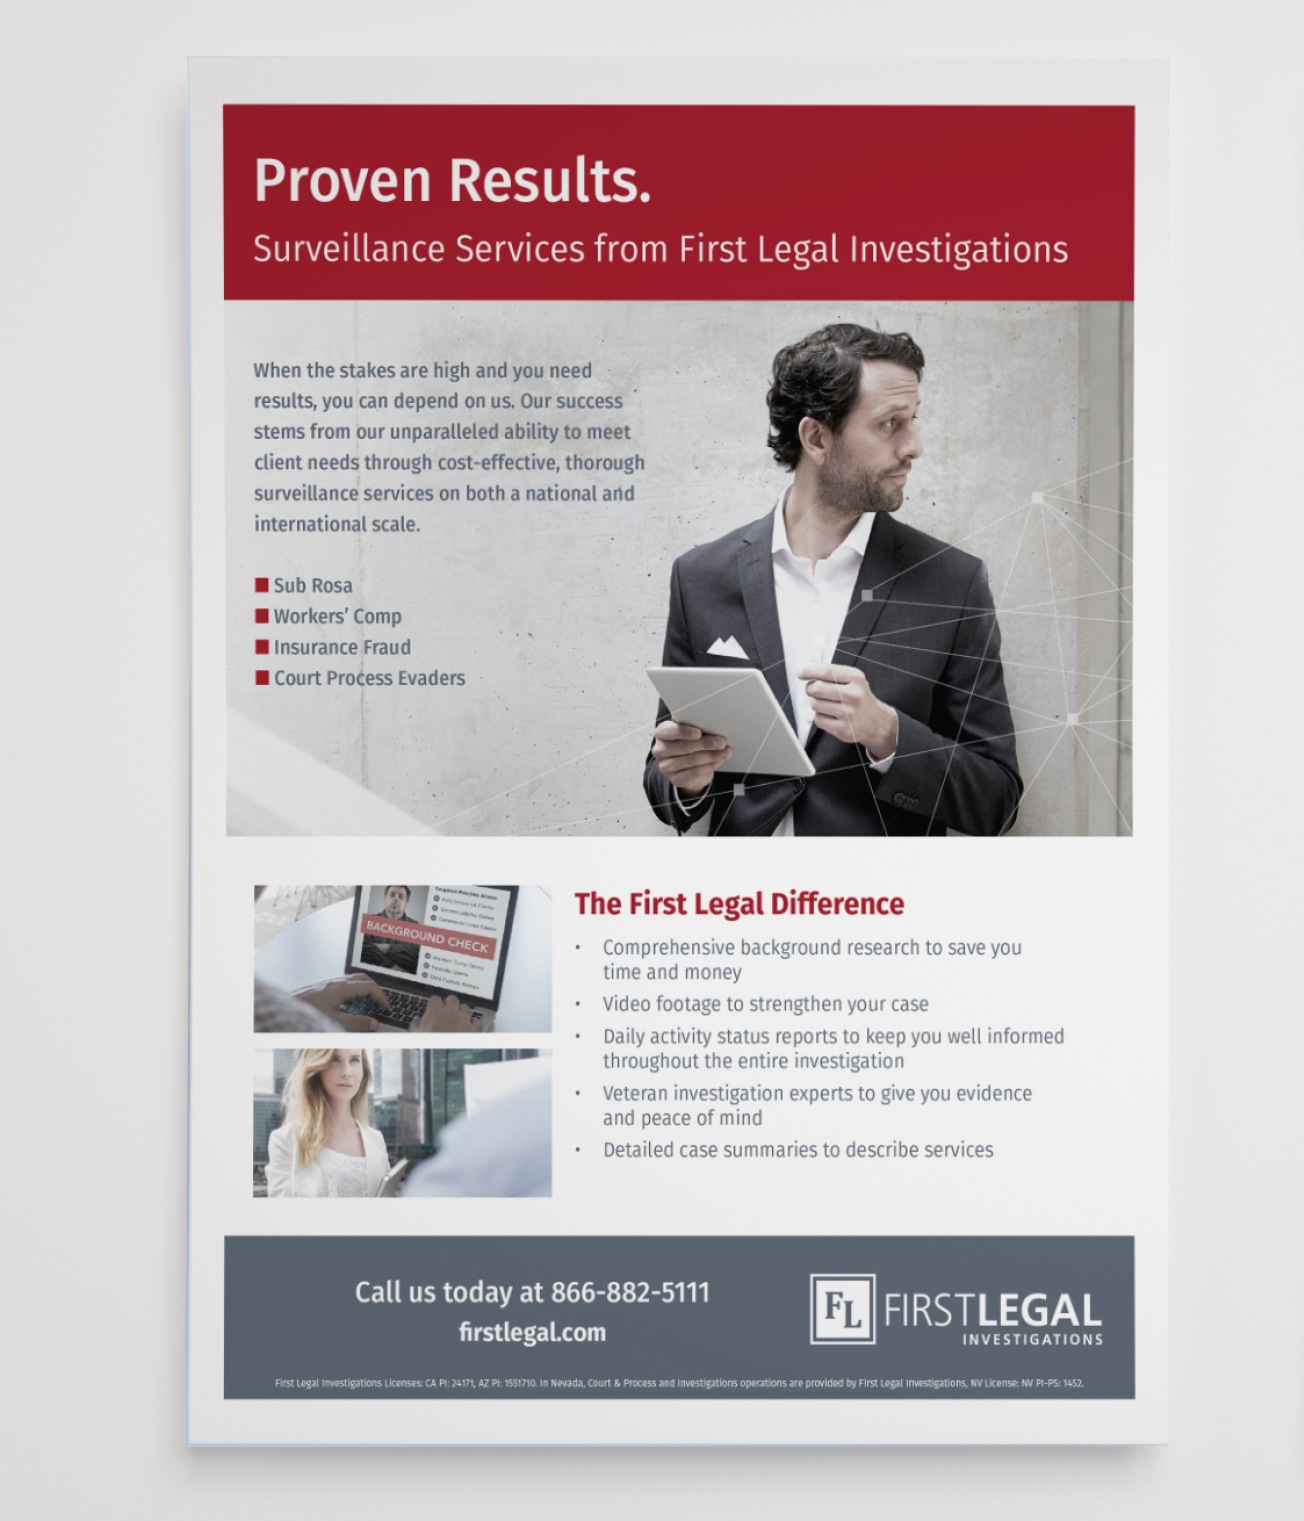 One-sheet flyer. Picture is of a suited lawyer looking at a tablet